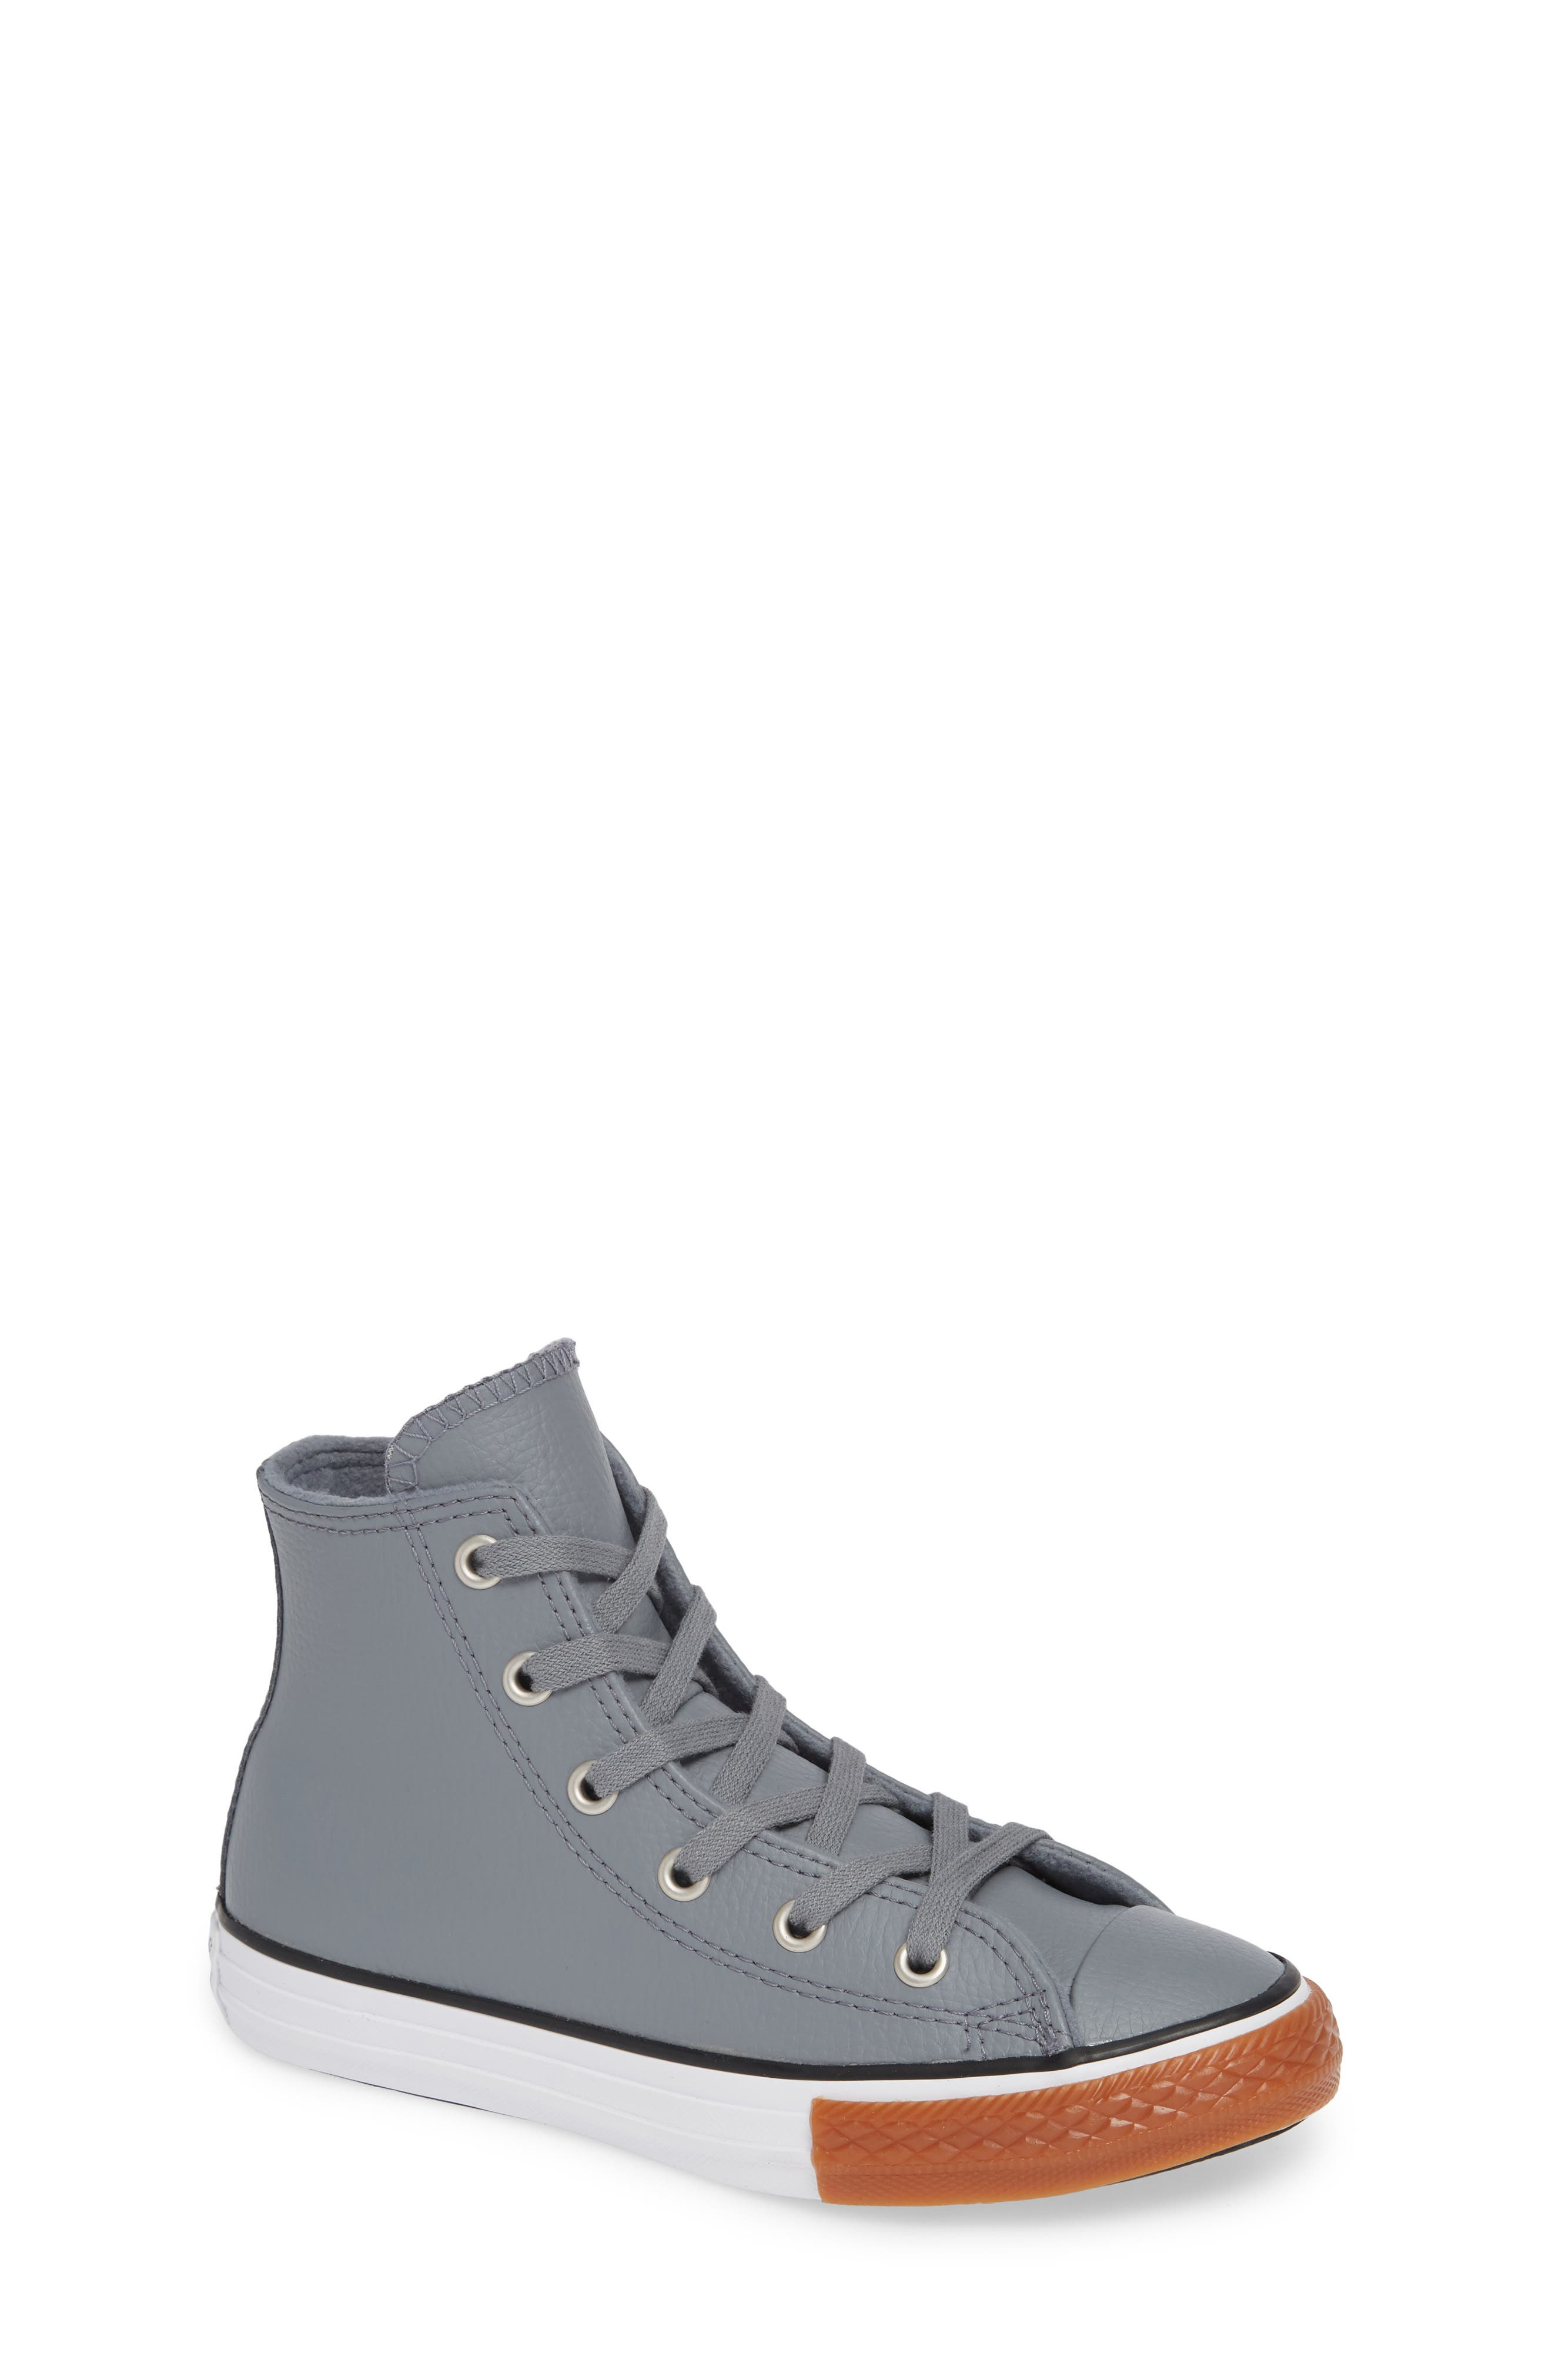 Chuck Taylor<sup>®</sup> All Star<sup>®</sup> No Gum In Class Leather High Top Sneaker,                         Main,                         color, 039